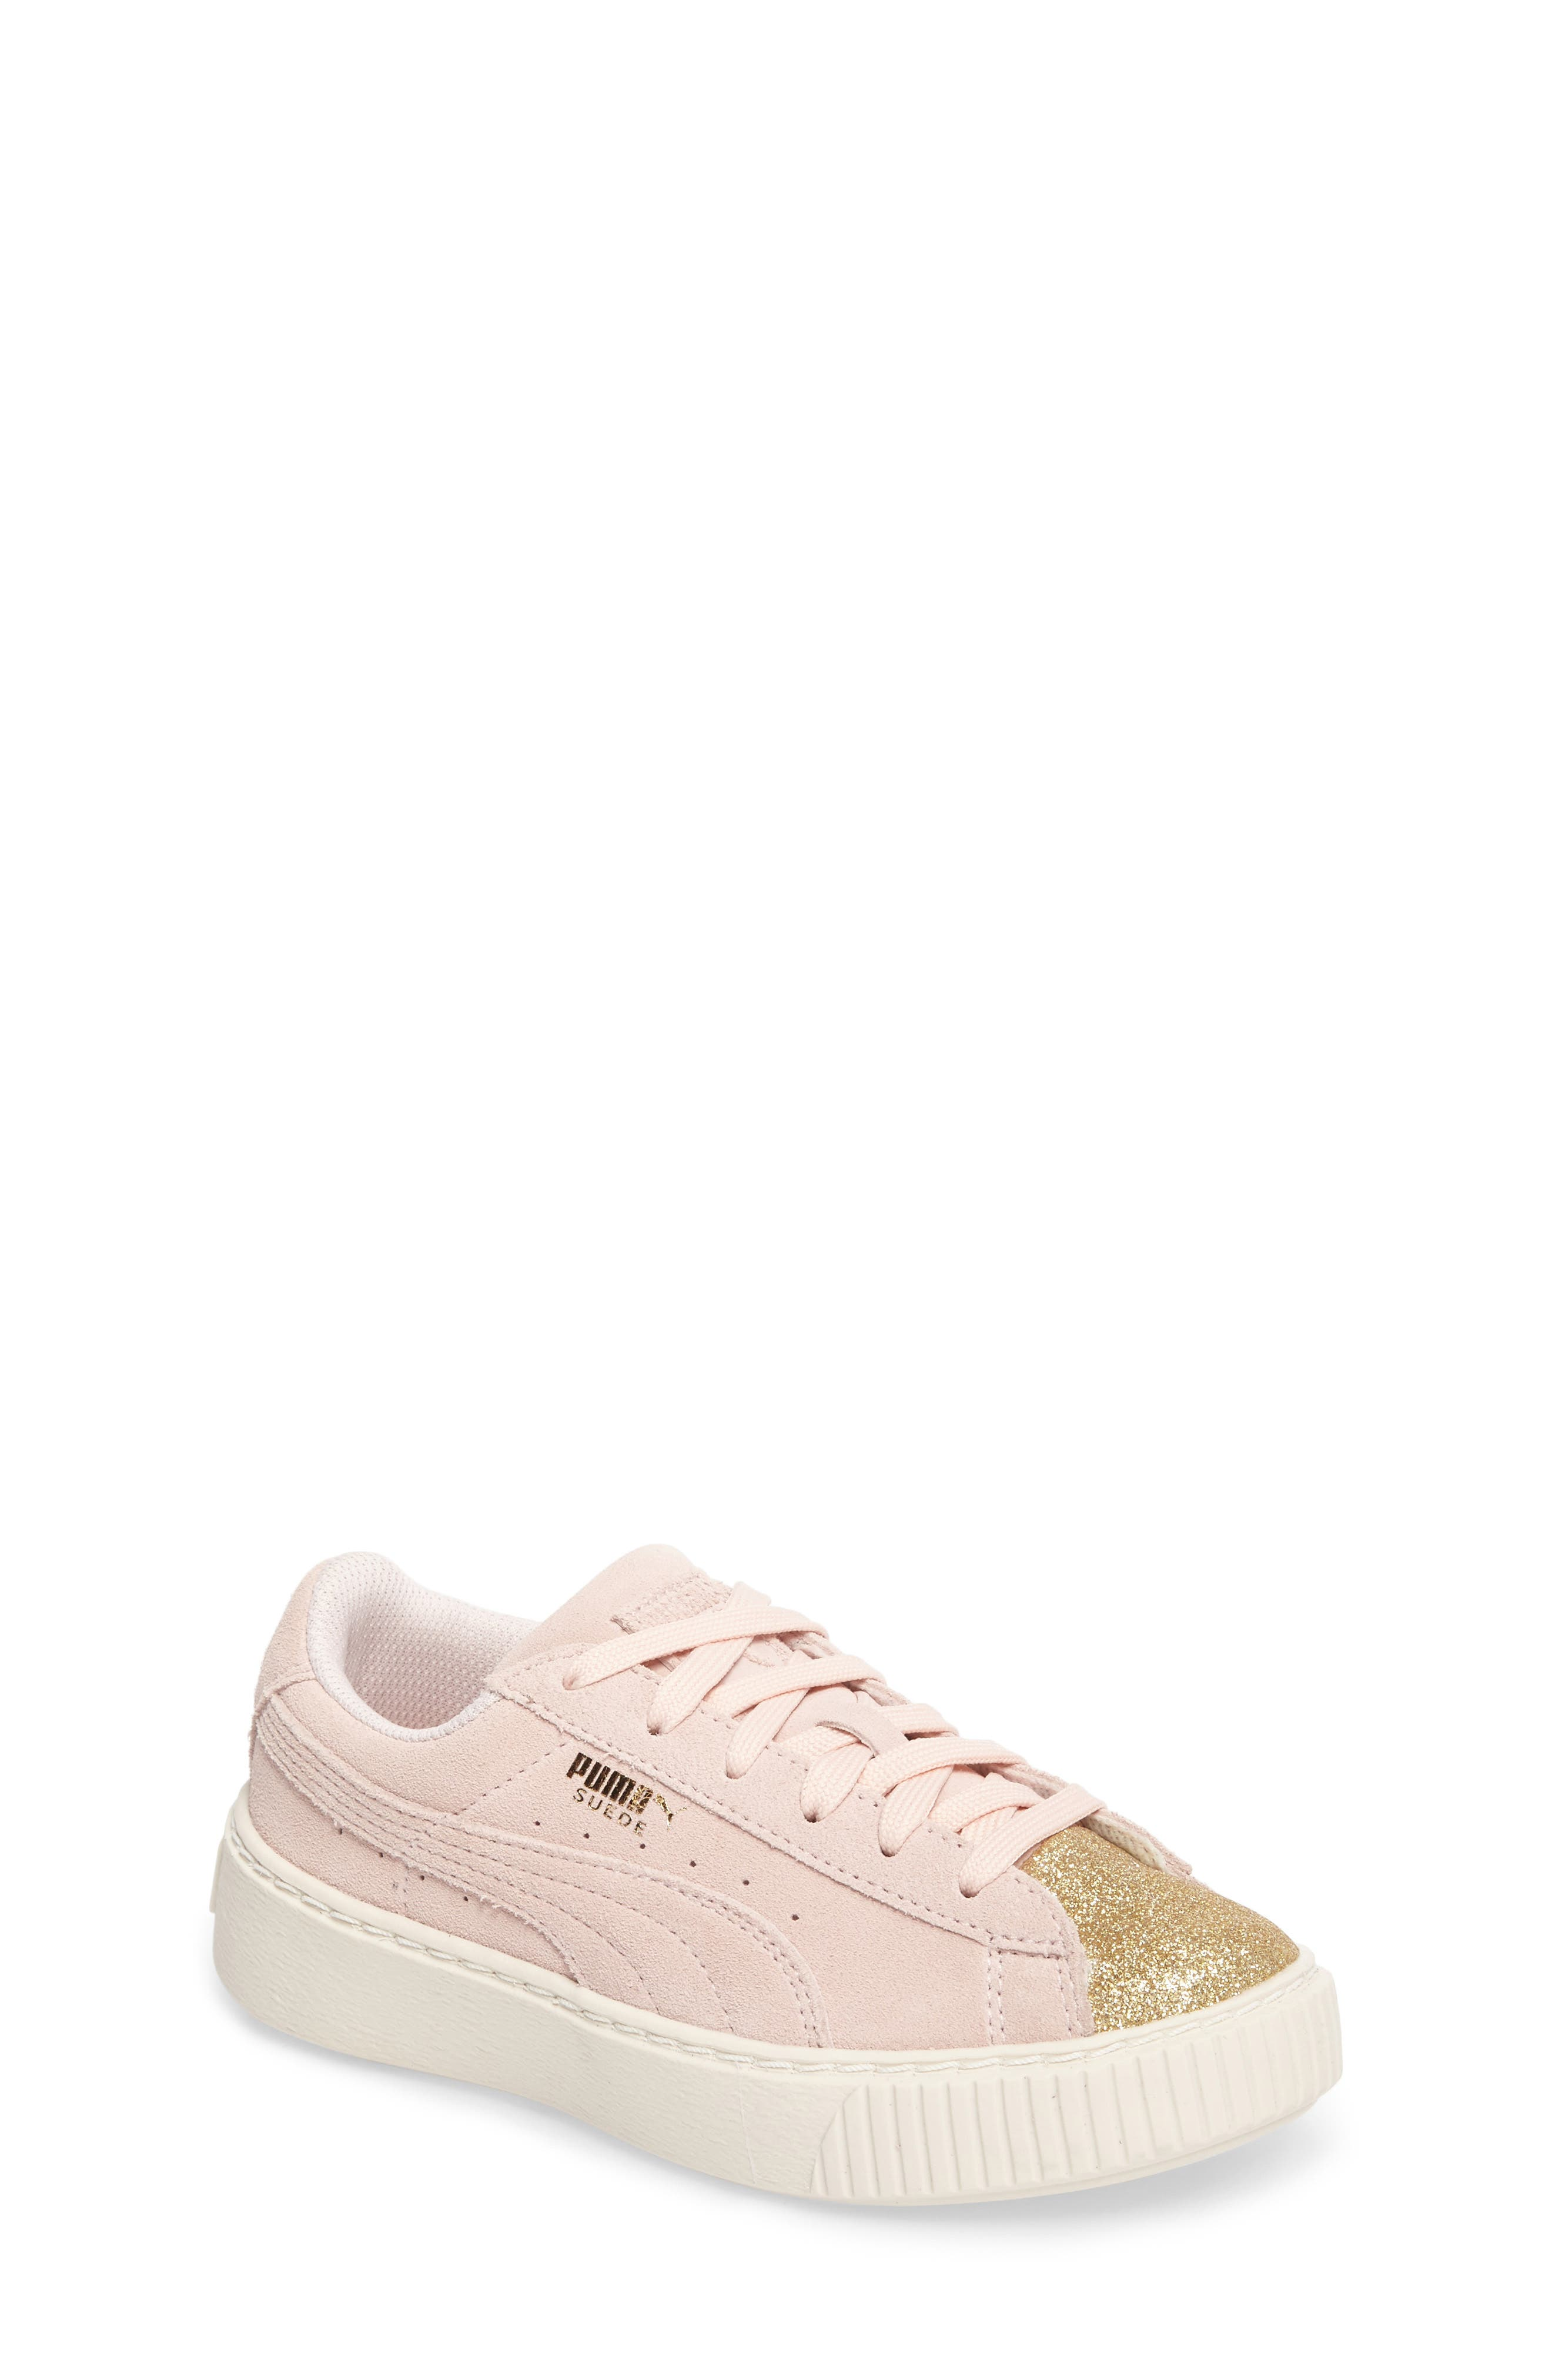 Main Image - PUMA Suede Platform Glam Sneaker (Toddler, Little Kid & Big Kid)